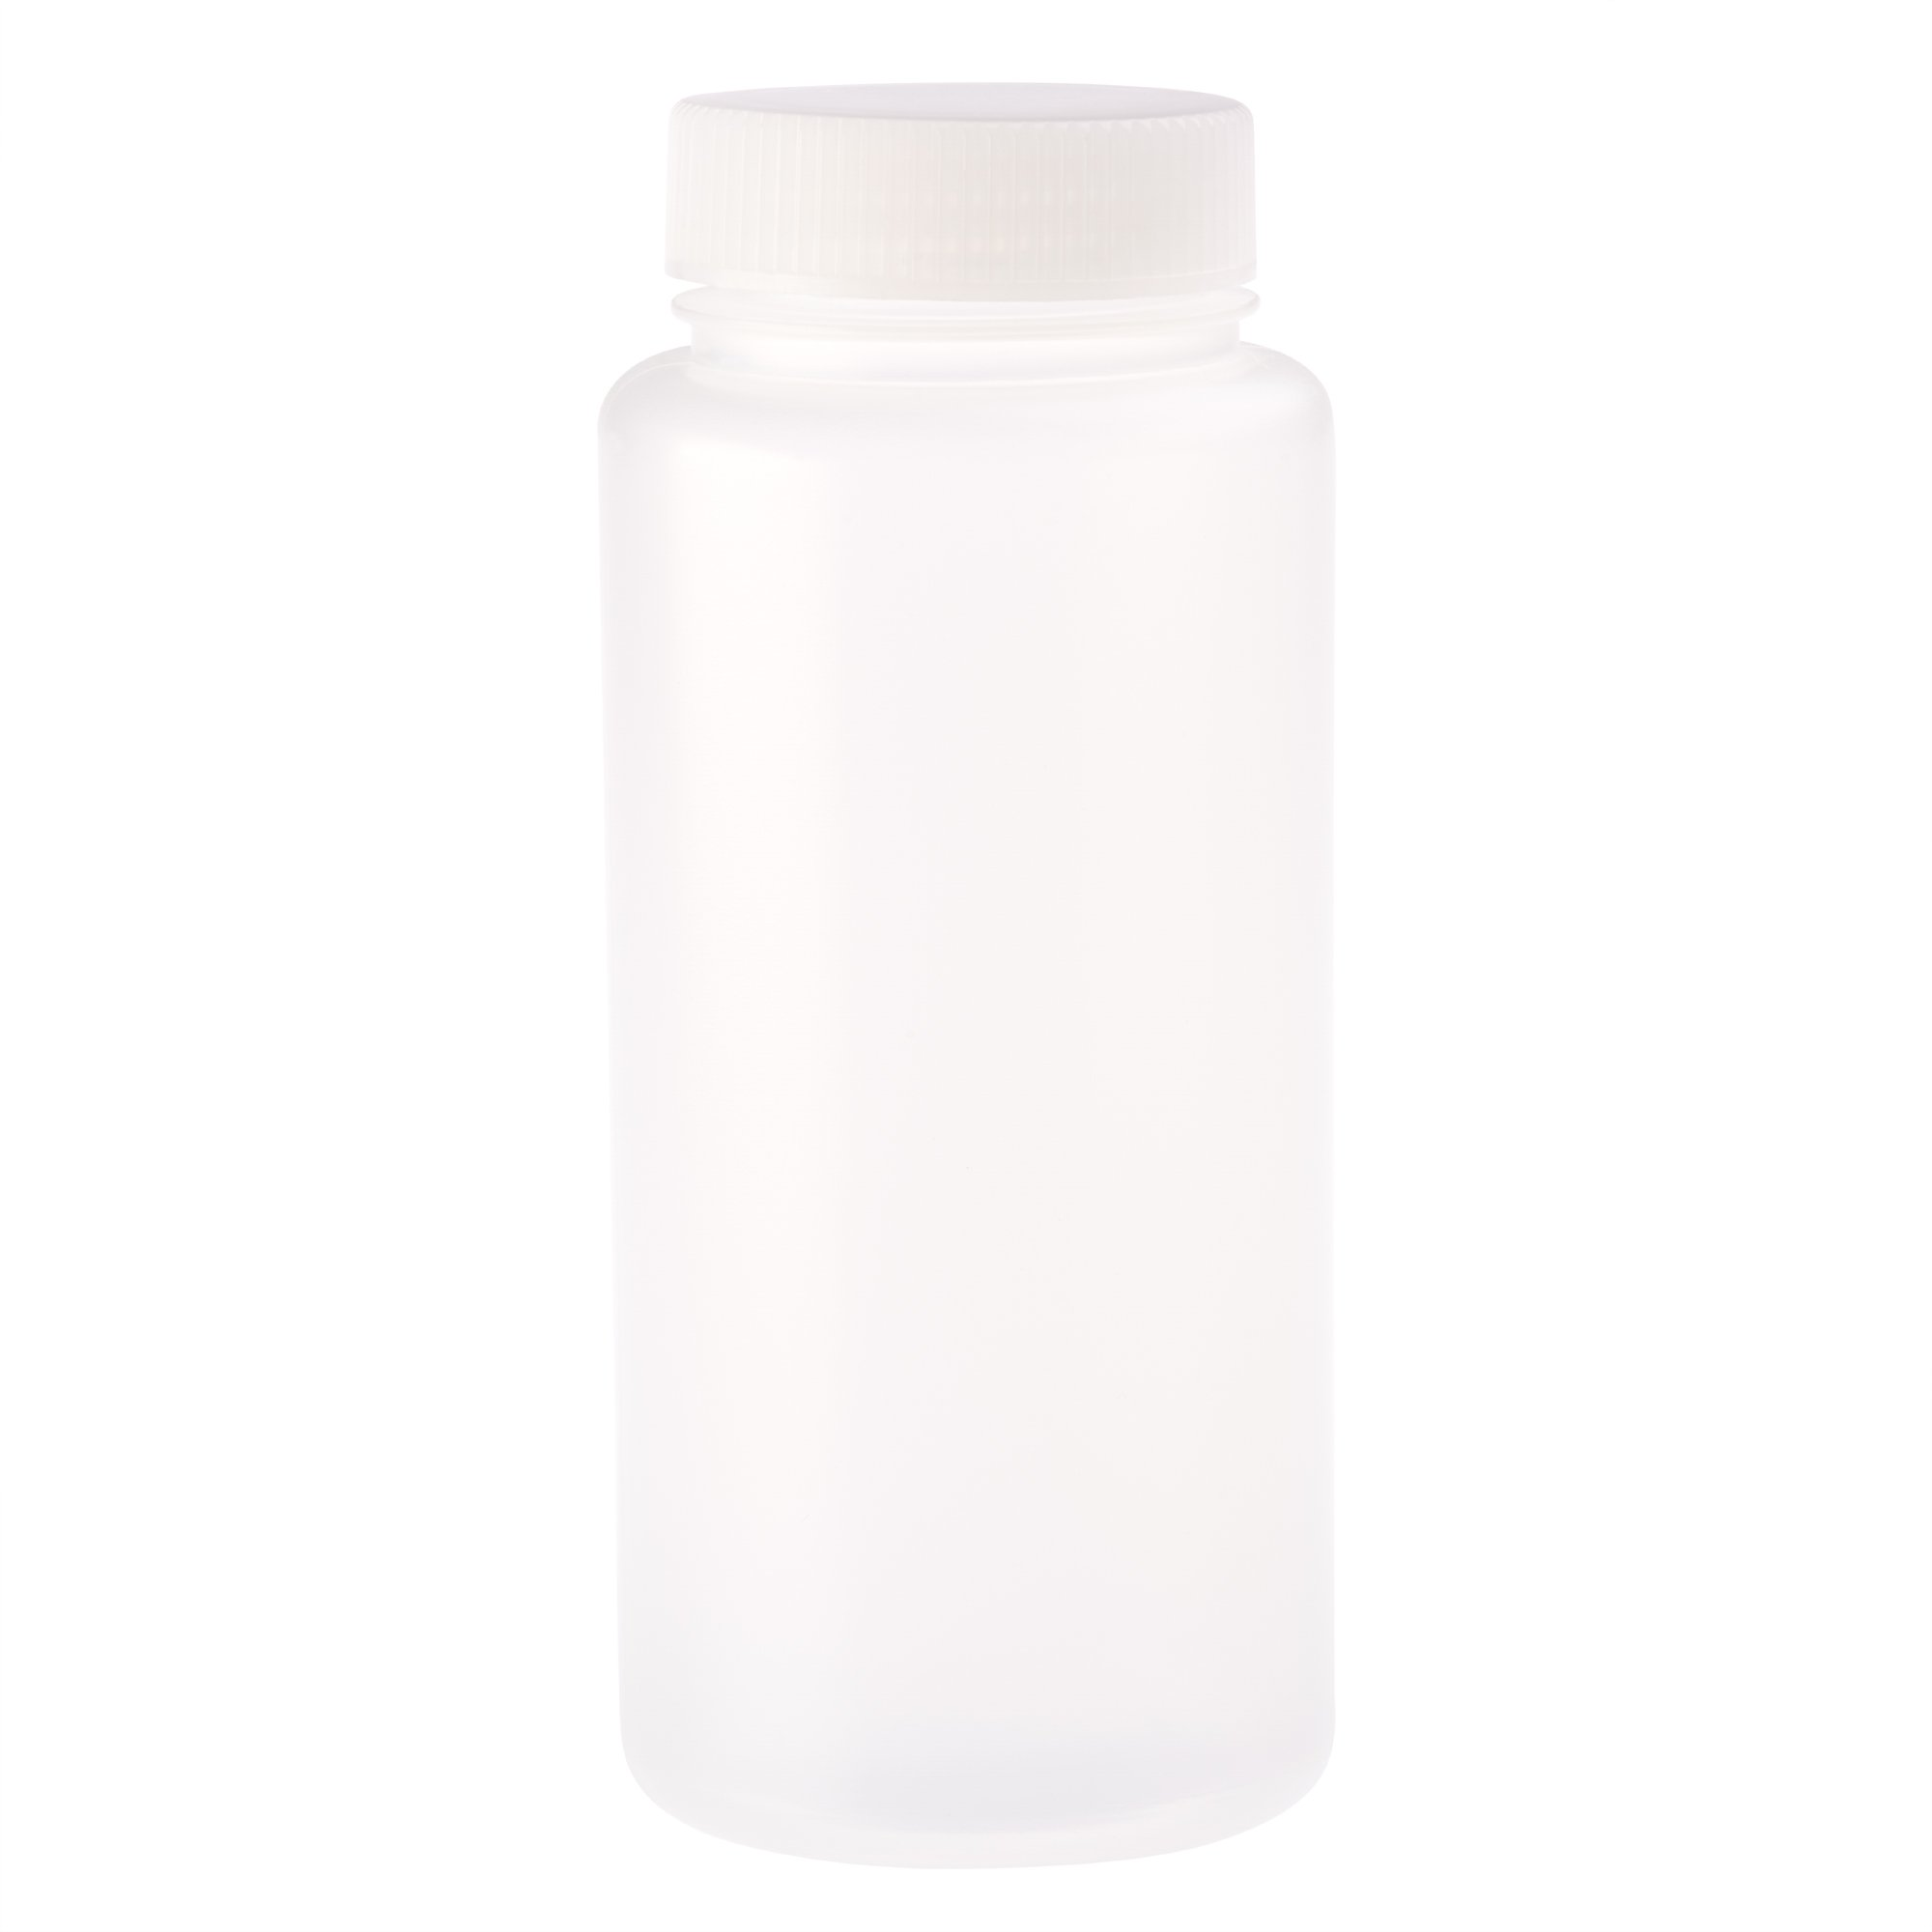 CELLTREAT 229797 500Ml Wide Mouth Bottle, Round, PP, Non-sterile (Pack of 24), Milliliters, Degree C, Polypropylene, (Pack of 24)